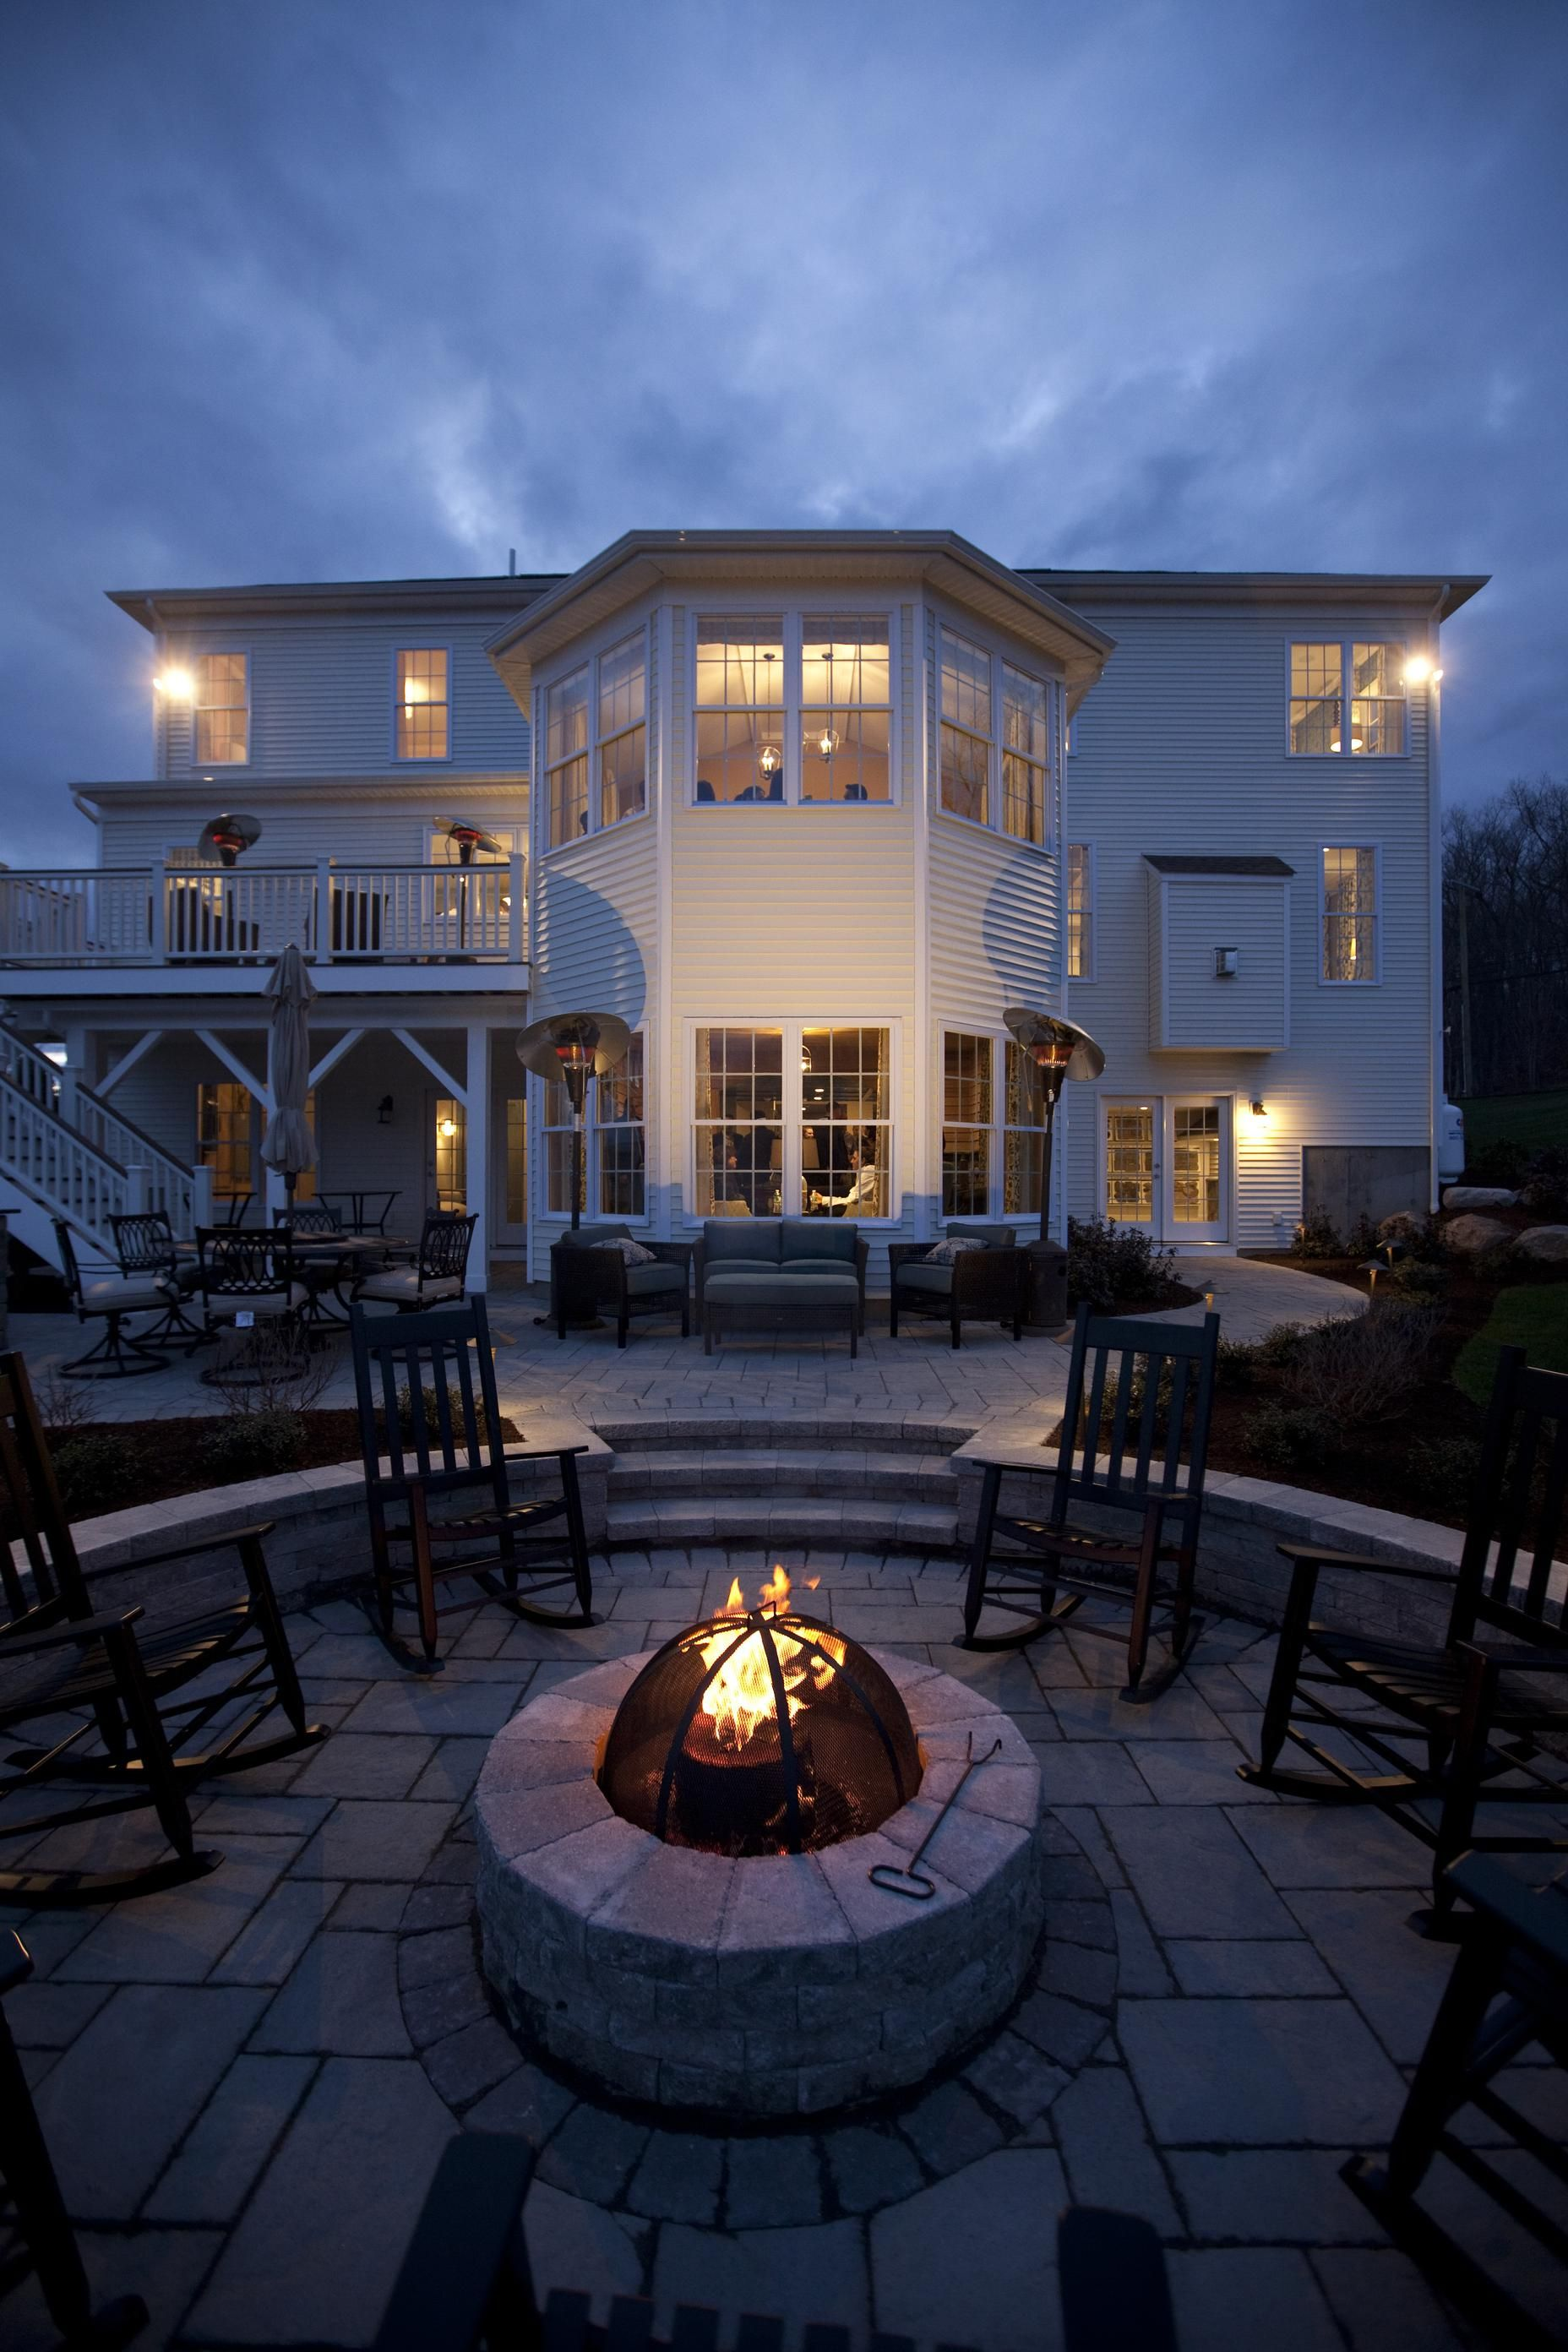 Warm Up By The Fire With Friends And Family In This Magnificent Home At Glastonbury Estates In Connecticut Outdoor Living Outdoor Living Space Living Spaces